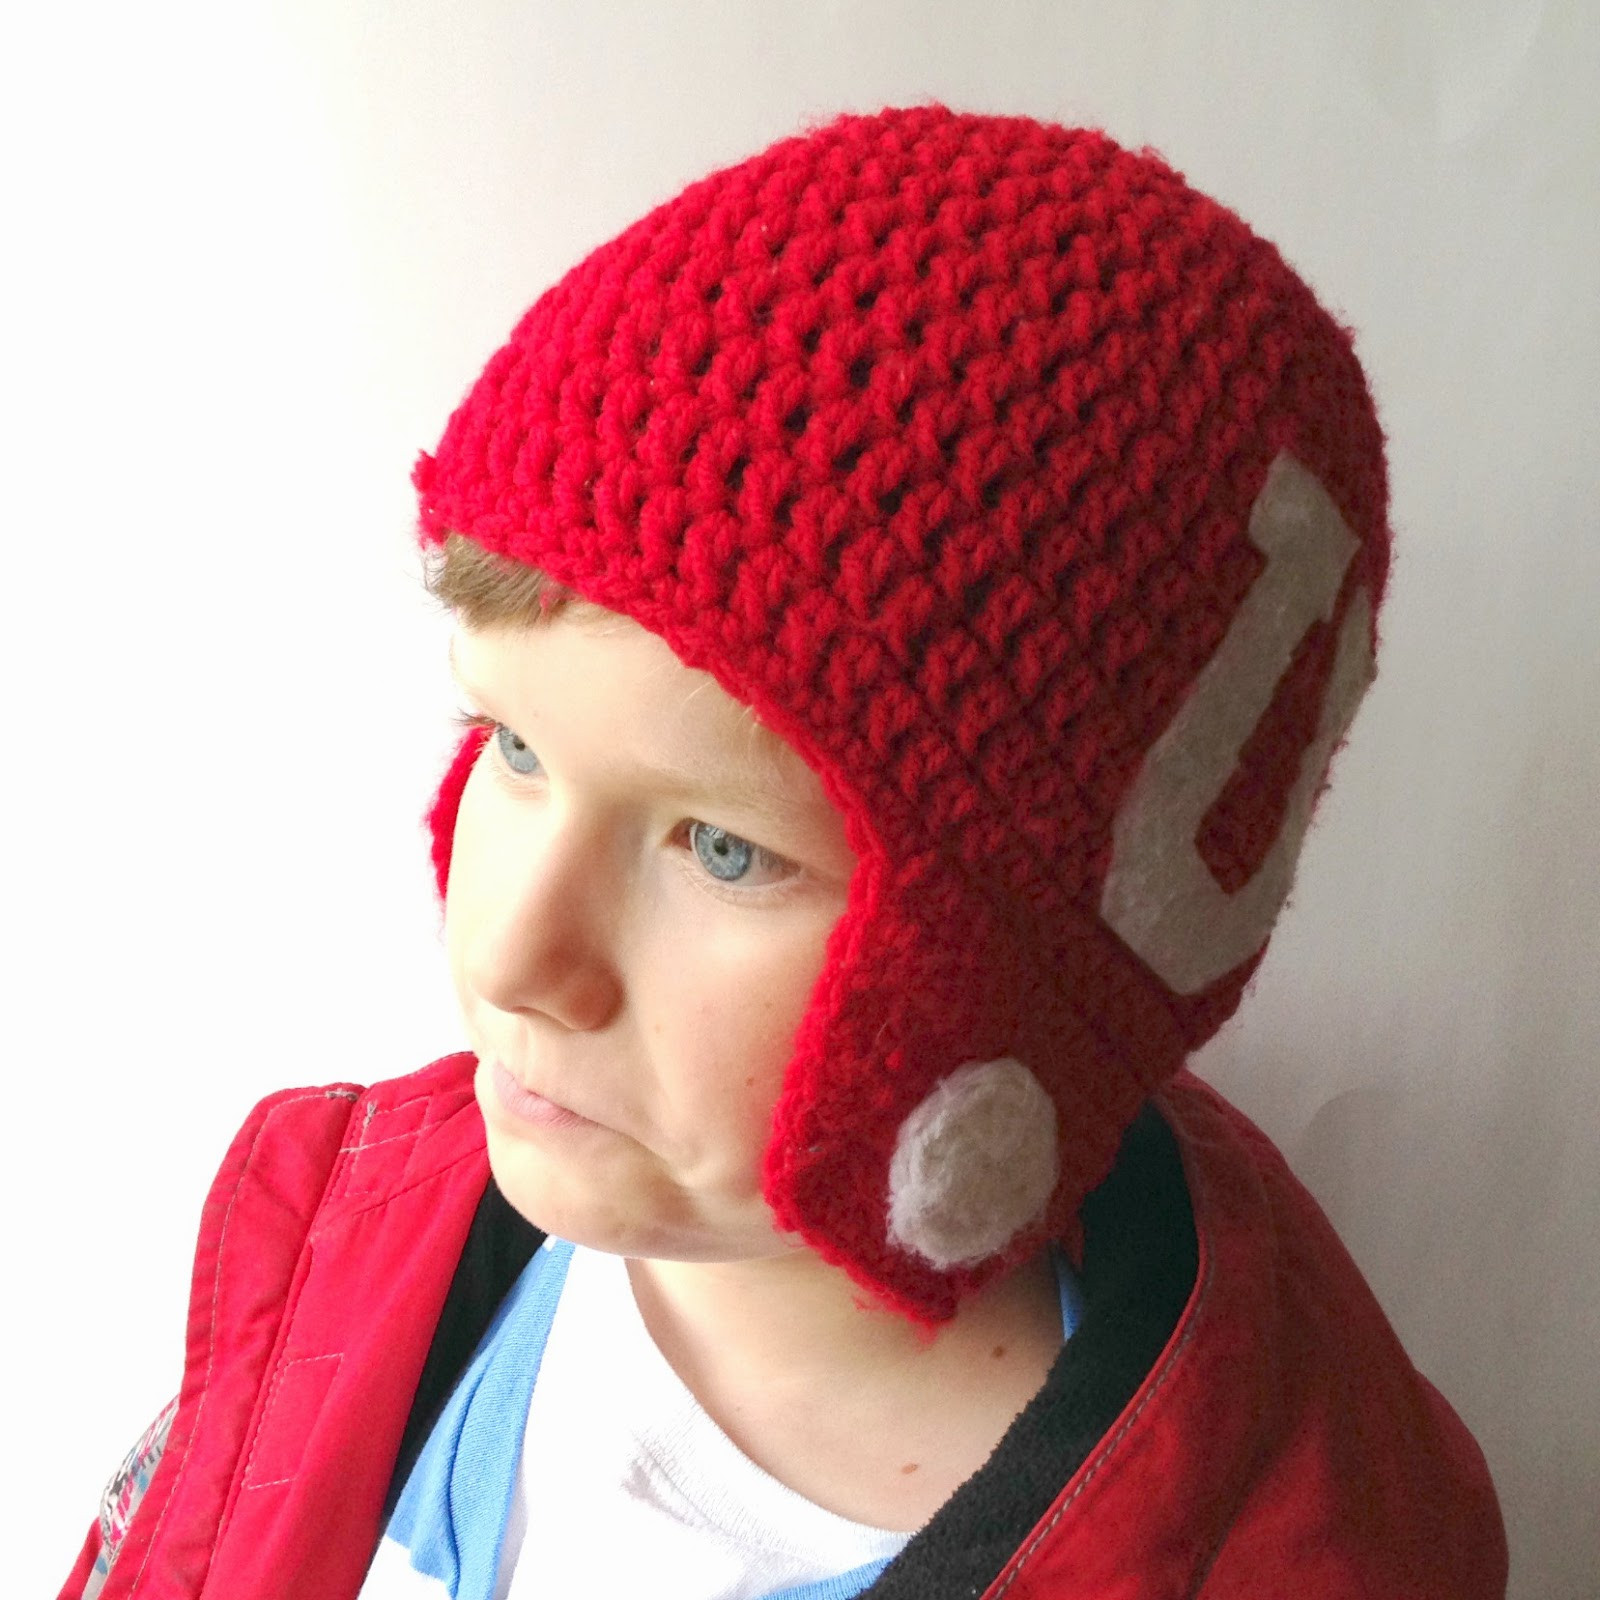 5 Little Monsters Crocheted Football Helmet Hats Free